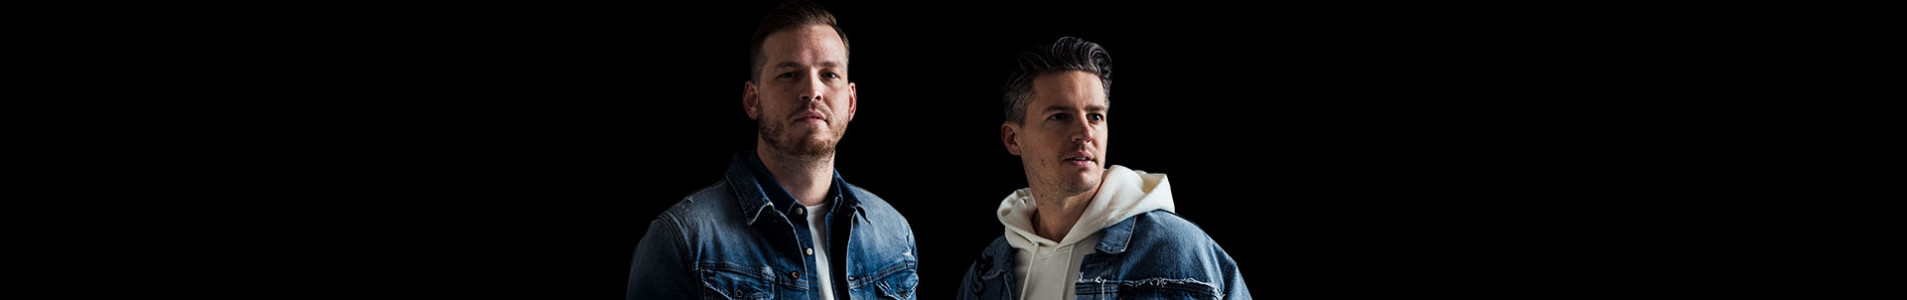 Firebeatz returns to Spinnin' Records